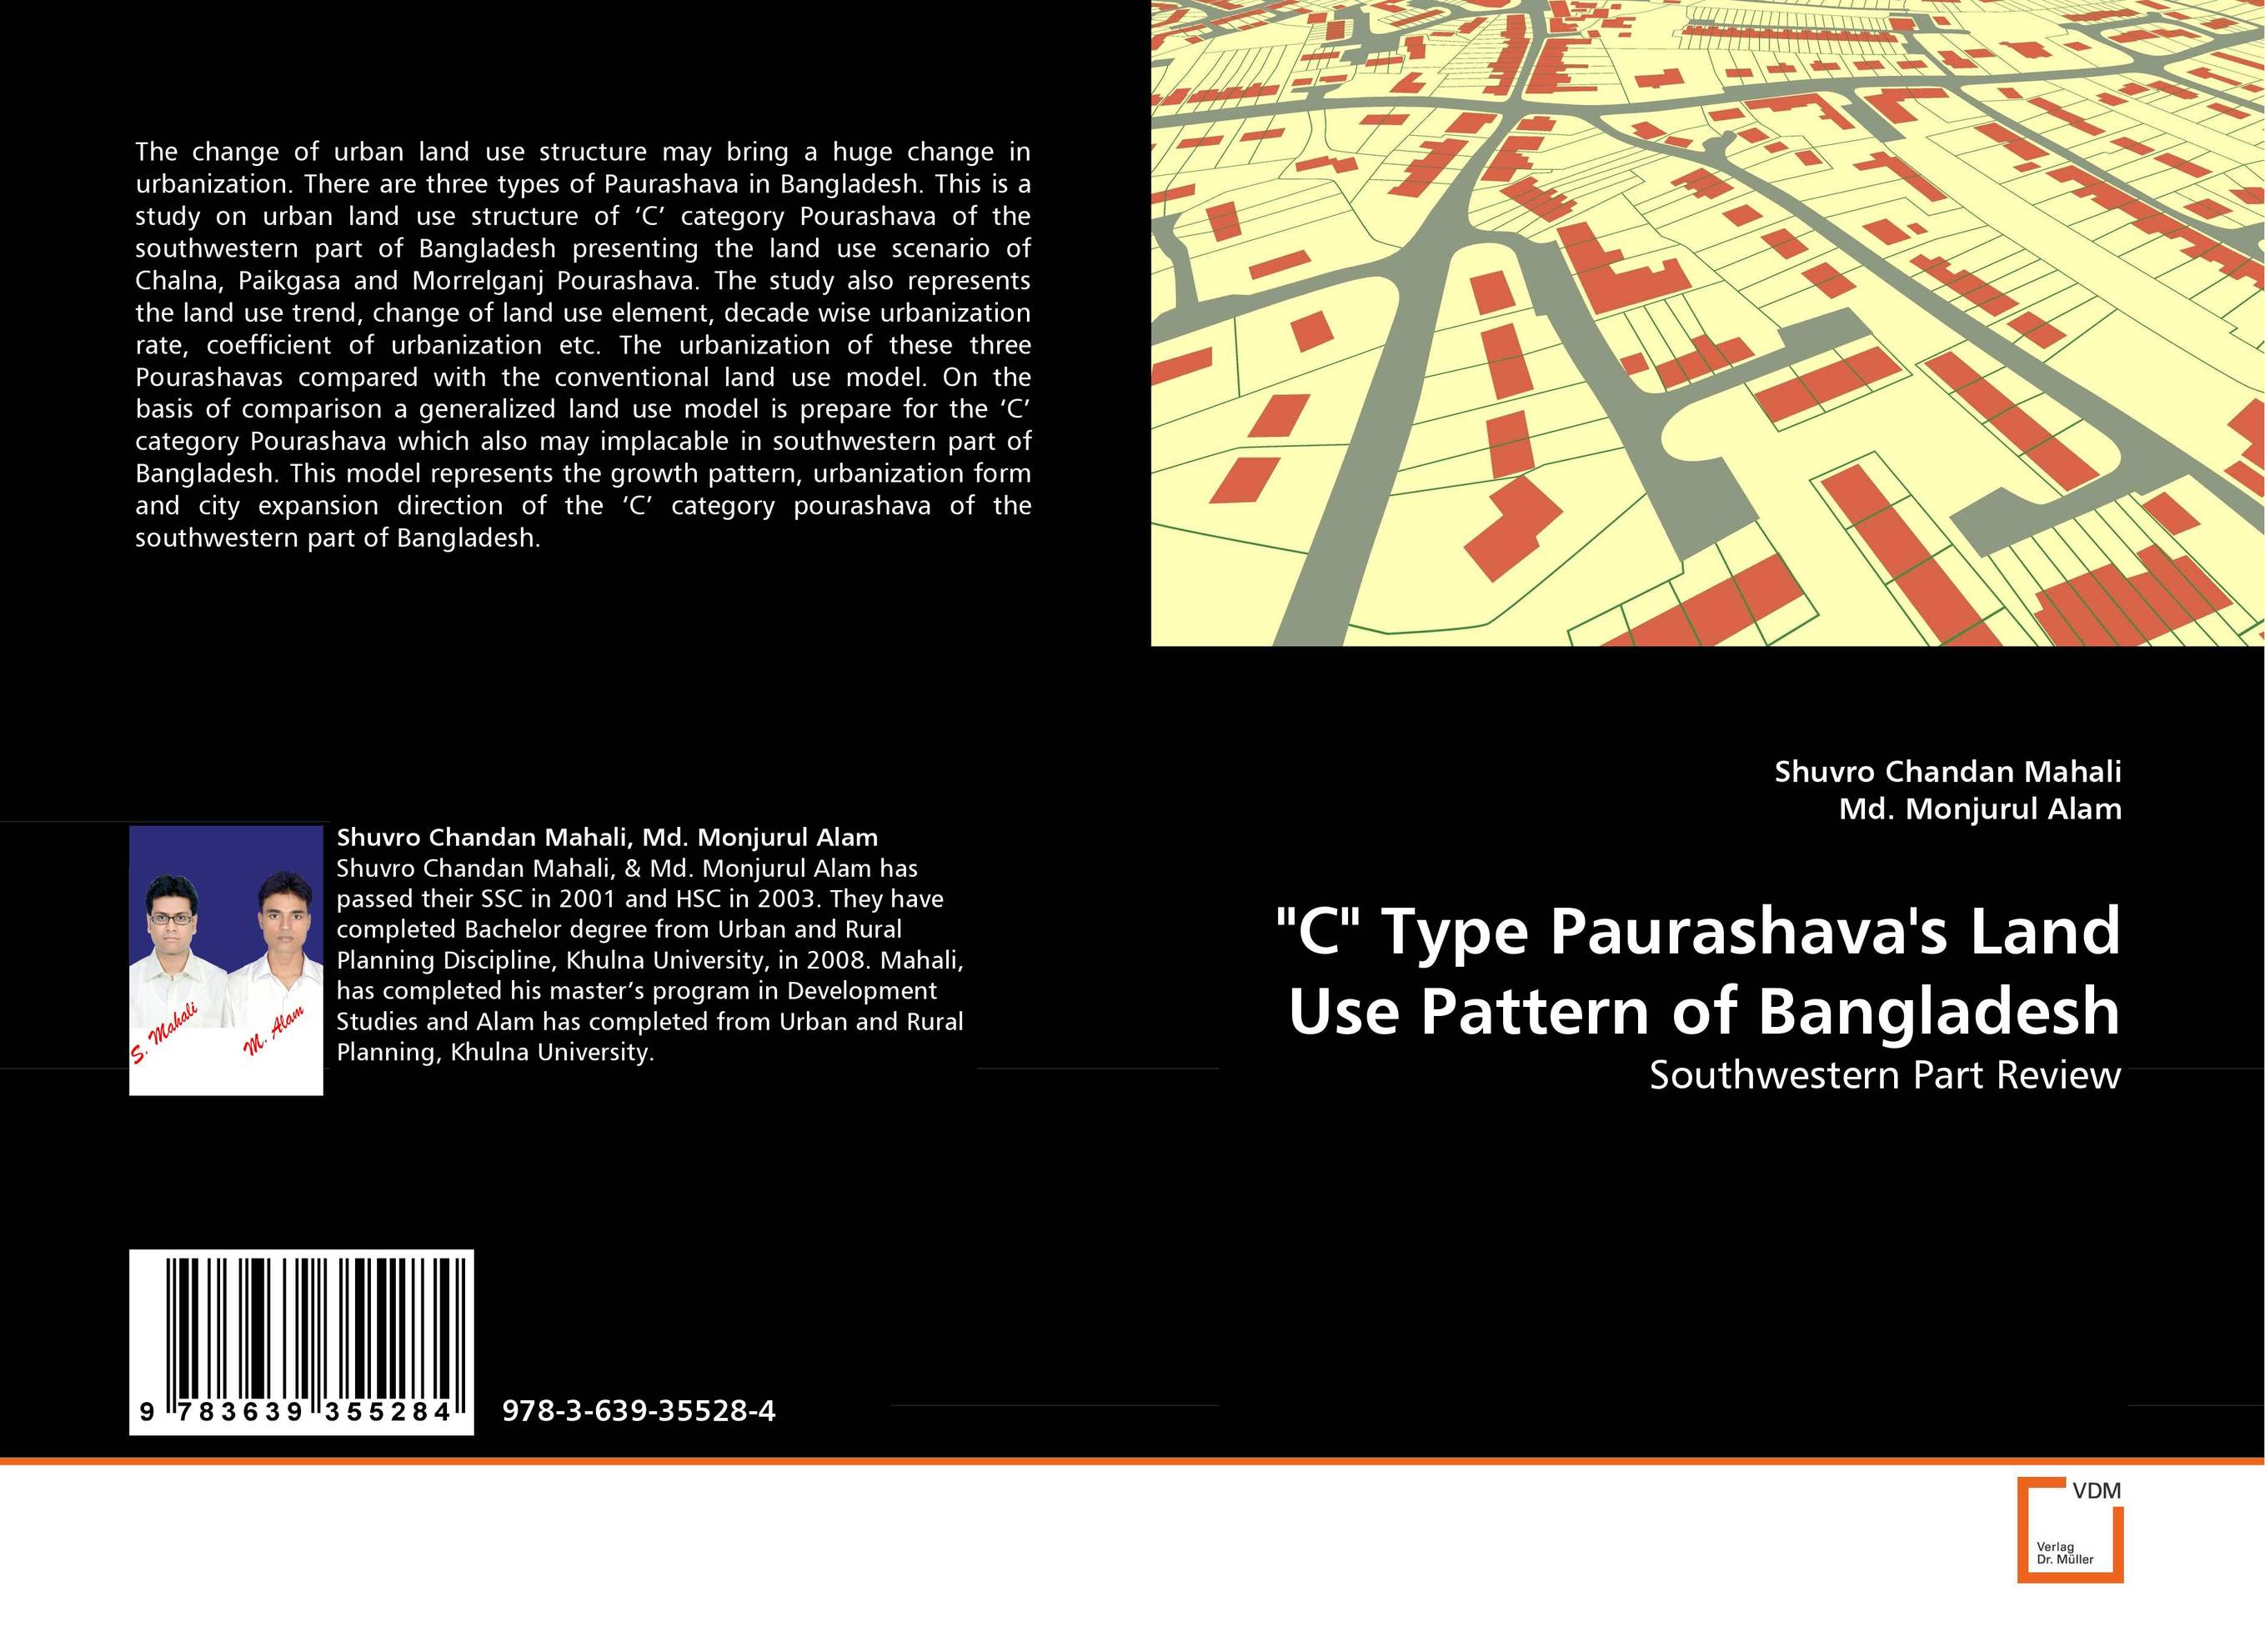 C Type Paurashava''s Land Use Pattern of Bangladesh метчик зубр 4 28003 10 1 25